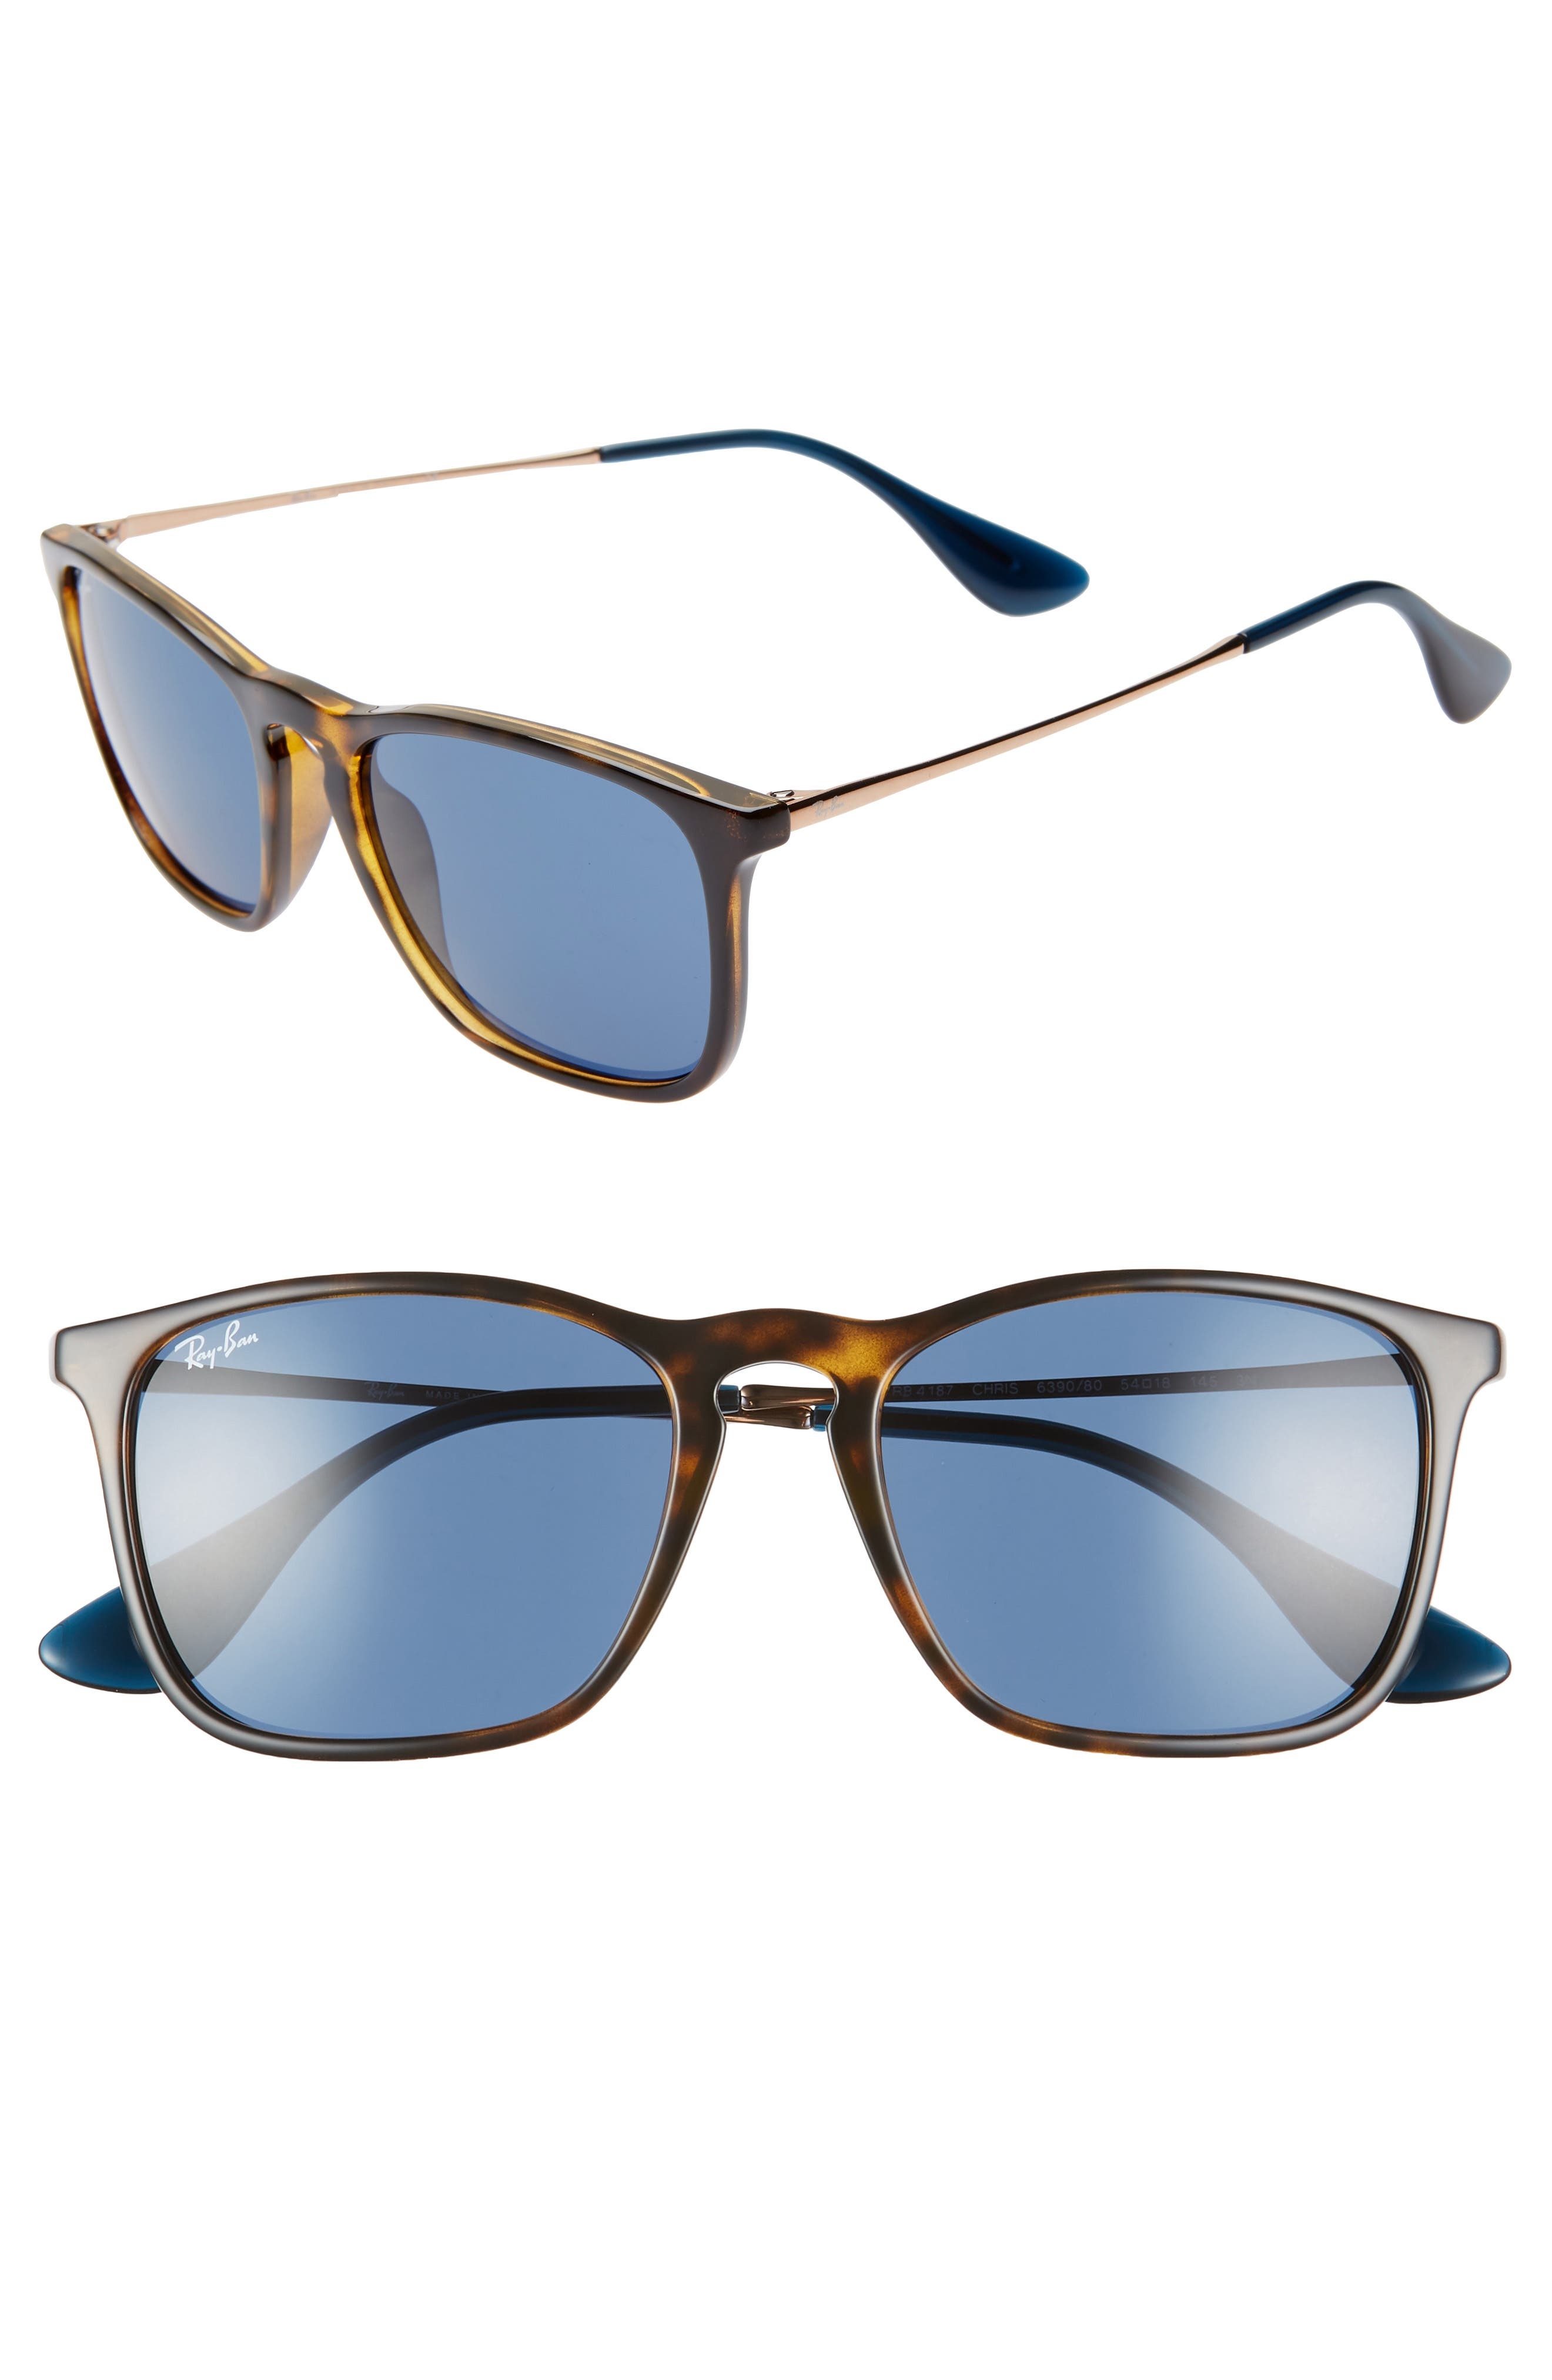 Ray-Ban Youngster 5m Square Keyhole Sunglasses - Tortoise/ Blue Solid